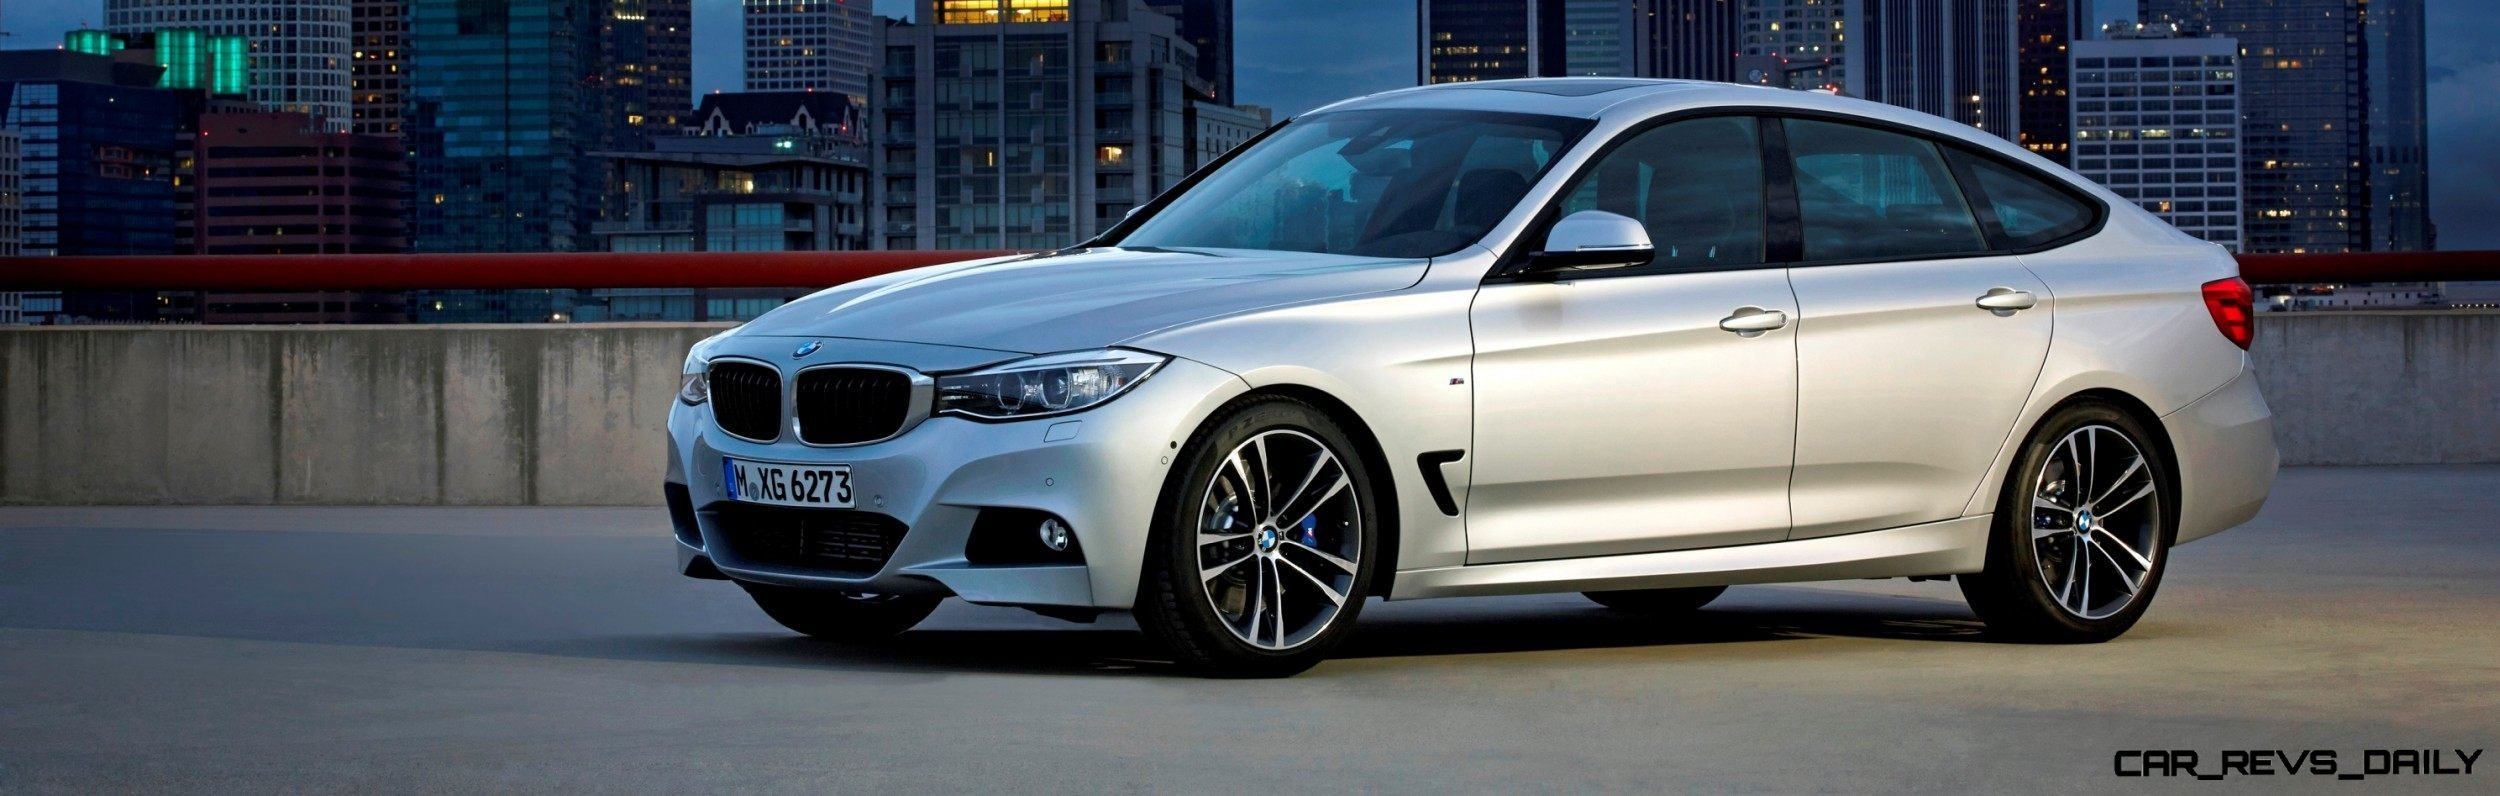 Best Of Awards BMW I GT M Sport Miles At MPH - 2014 bmw 335i coupe